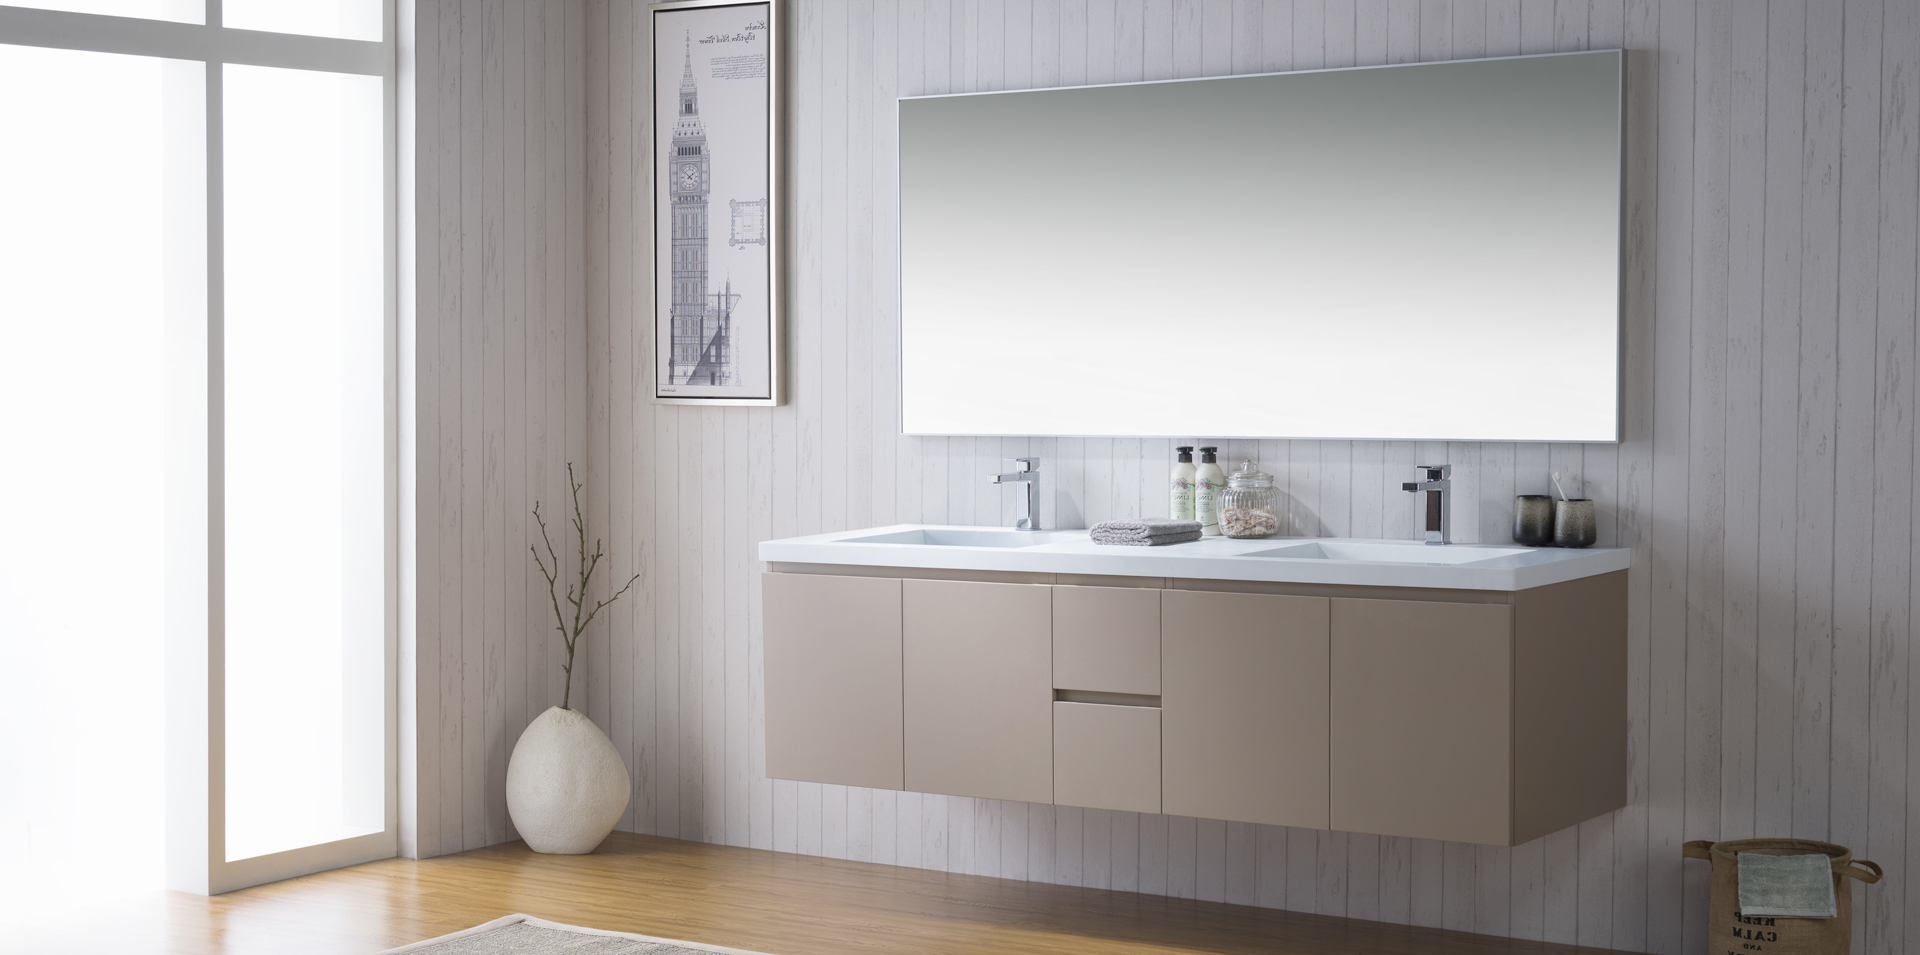 Modern Bathroom Vanities Cabinets Faucets Bathroom Place Miami - Bathroom vanities hialeah fl